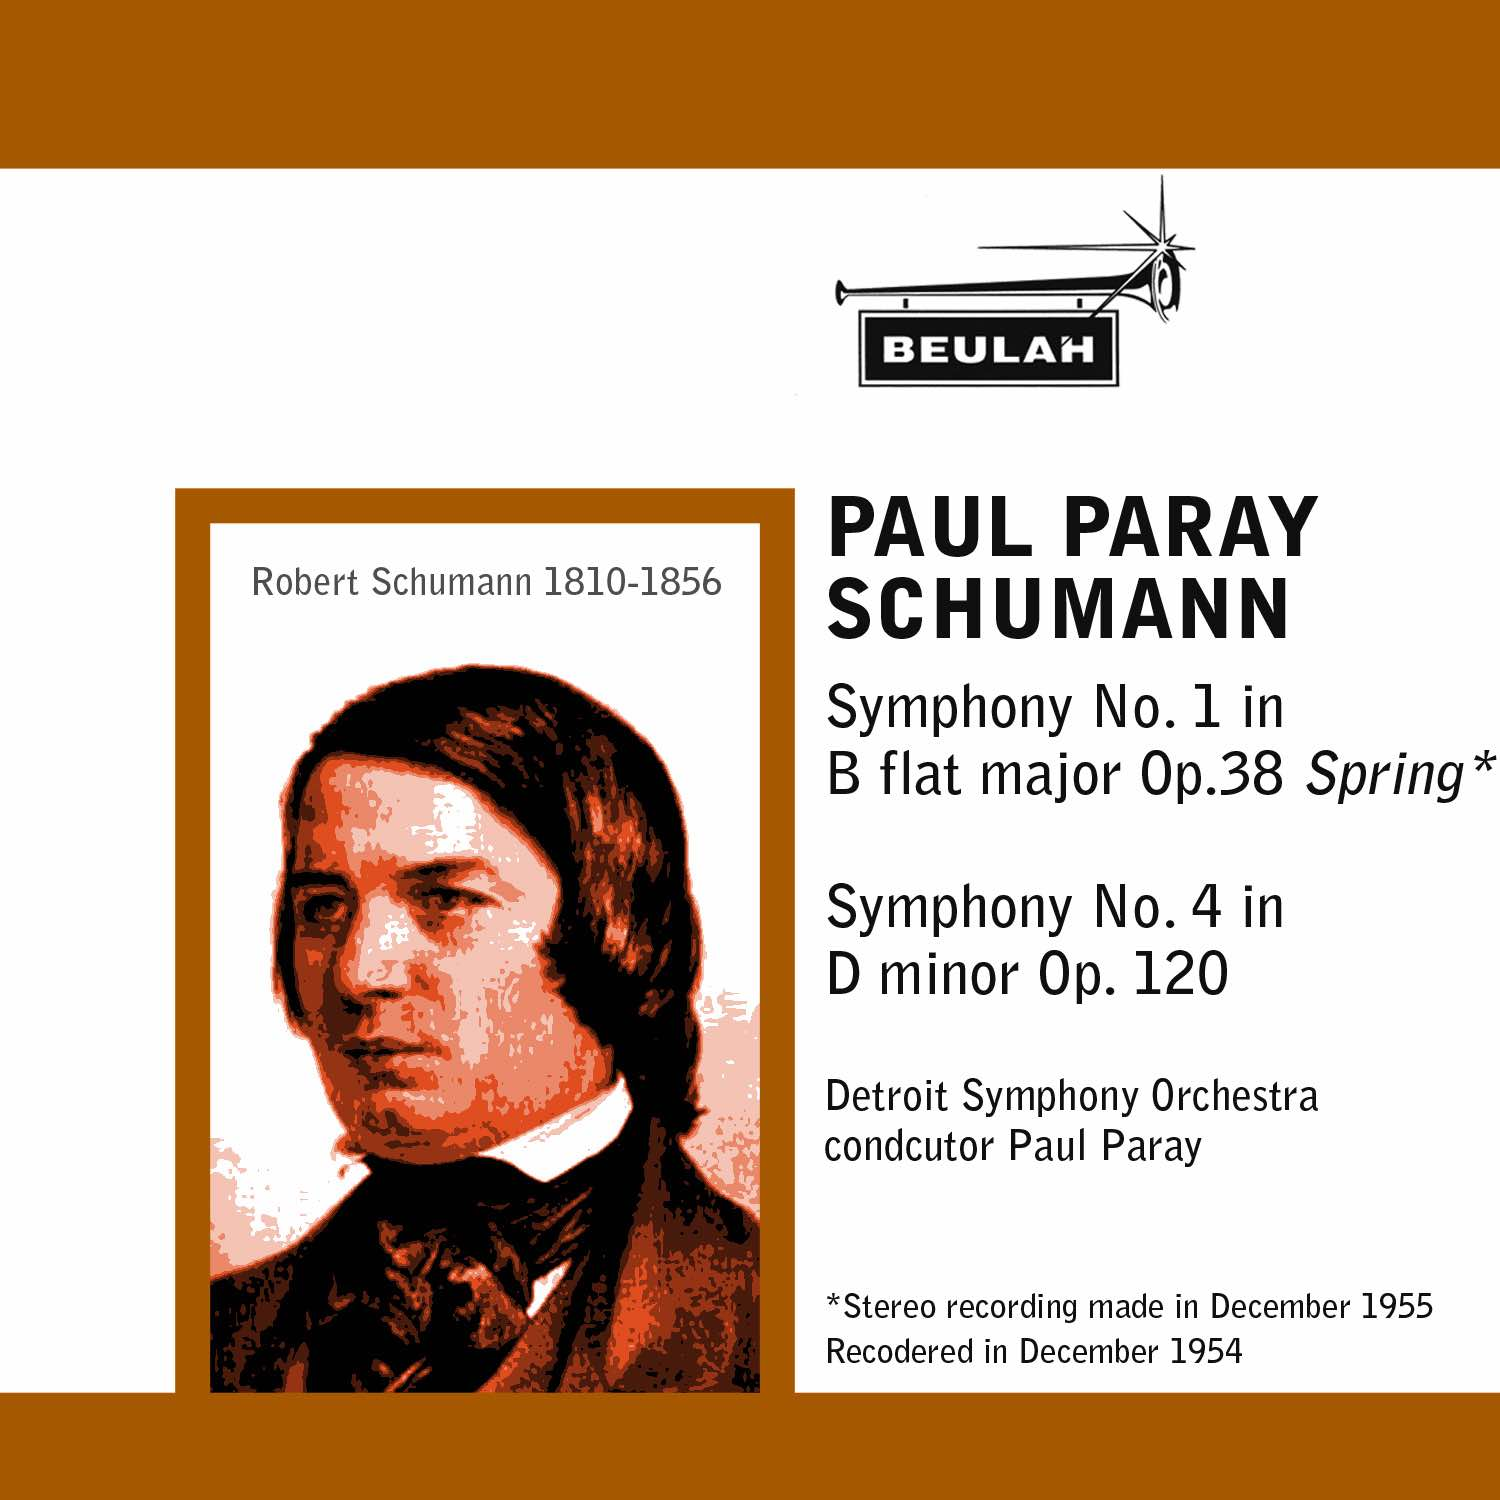 schumann symphonies numbers 1 and 4 paul paray detriot symphony orchestra